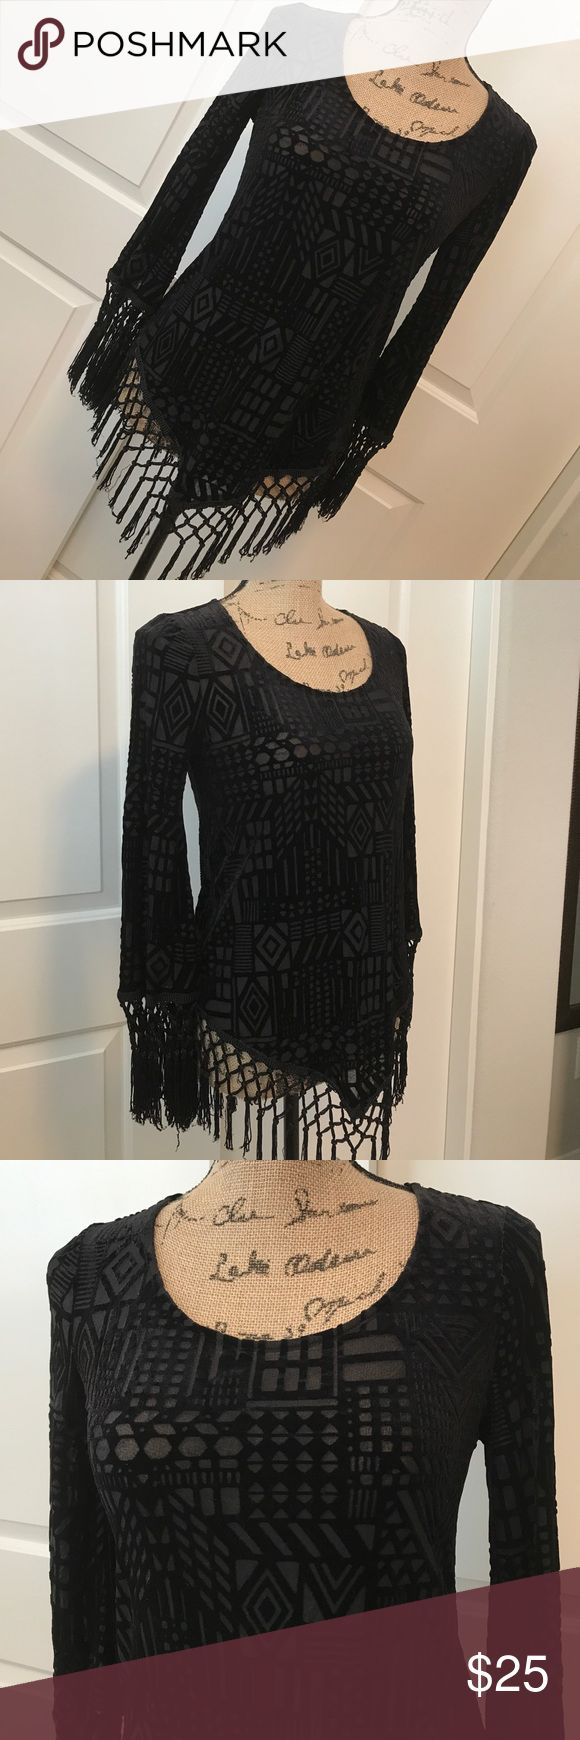 MONTEAU Black Burn Out Fringe Long sleeve Top Boho funky style black fringe top. It has a beautiful velveteen Aztec print burn out design and black fringe along v-line hem and sleeves. Gently worn once. In excellent condition. Monteau Tops